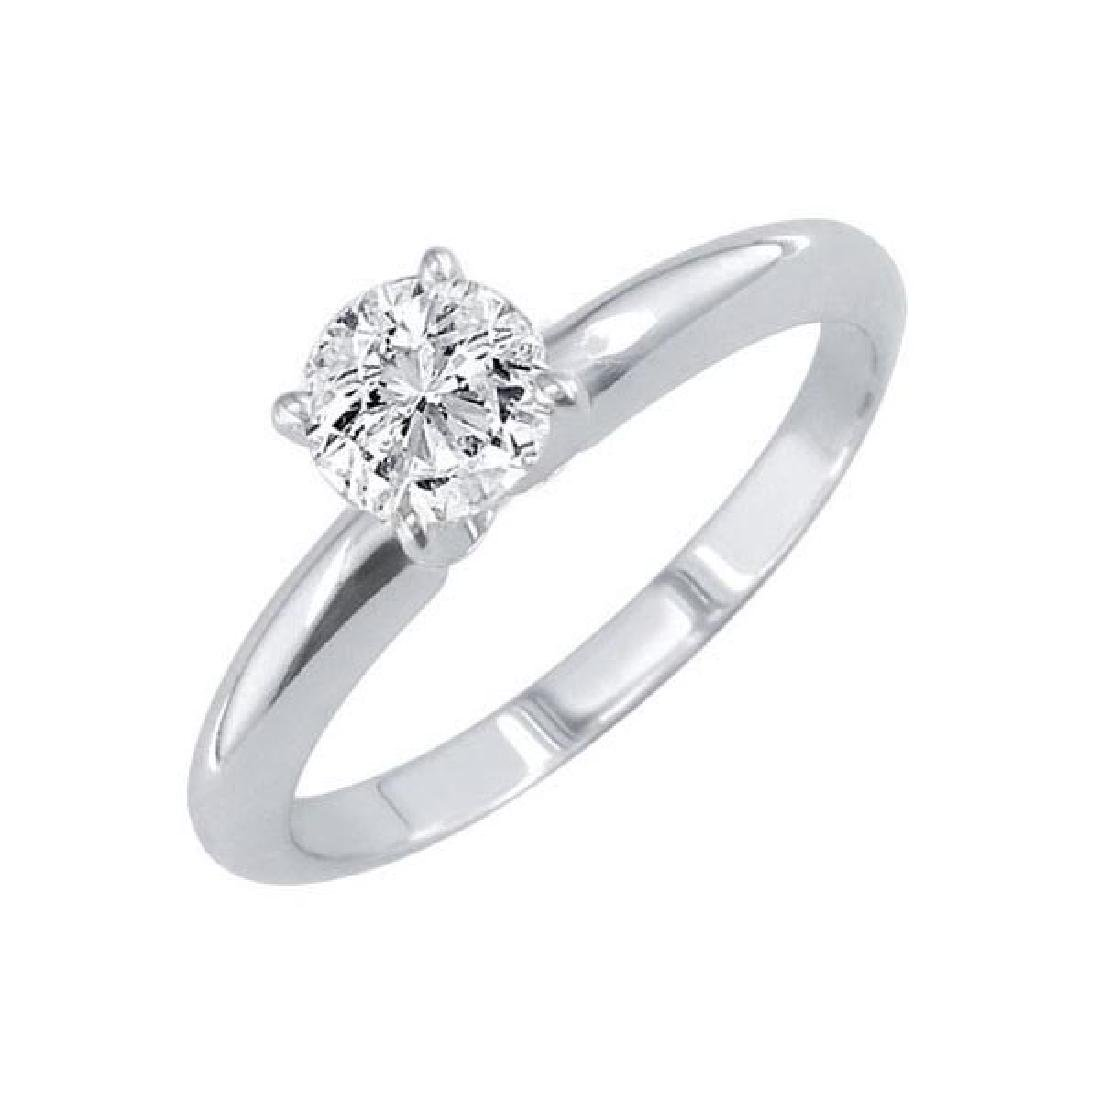 Certified 0.62 CTW Round Diamond Solitaire 14k Ring E/I